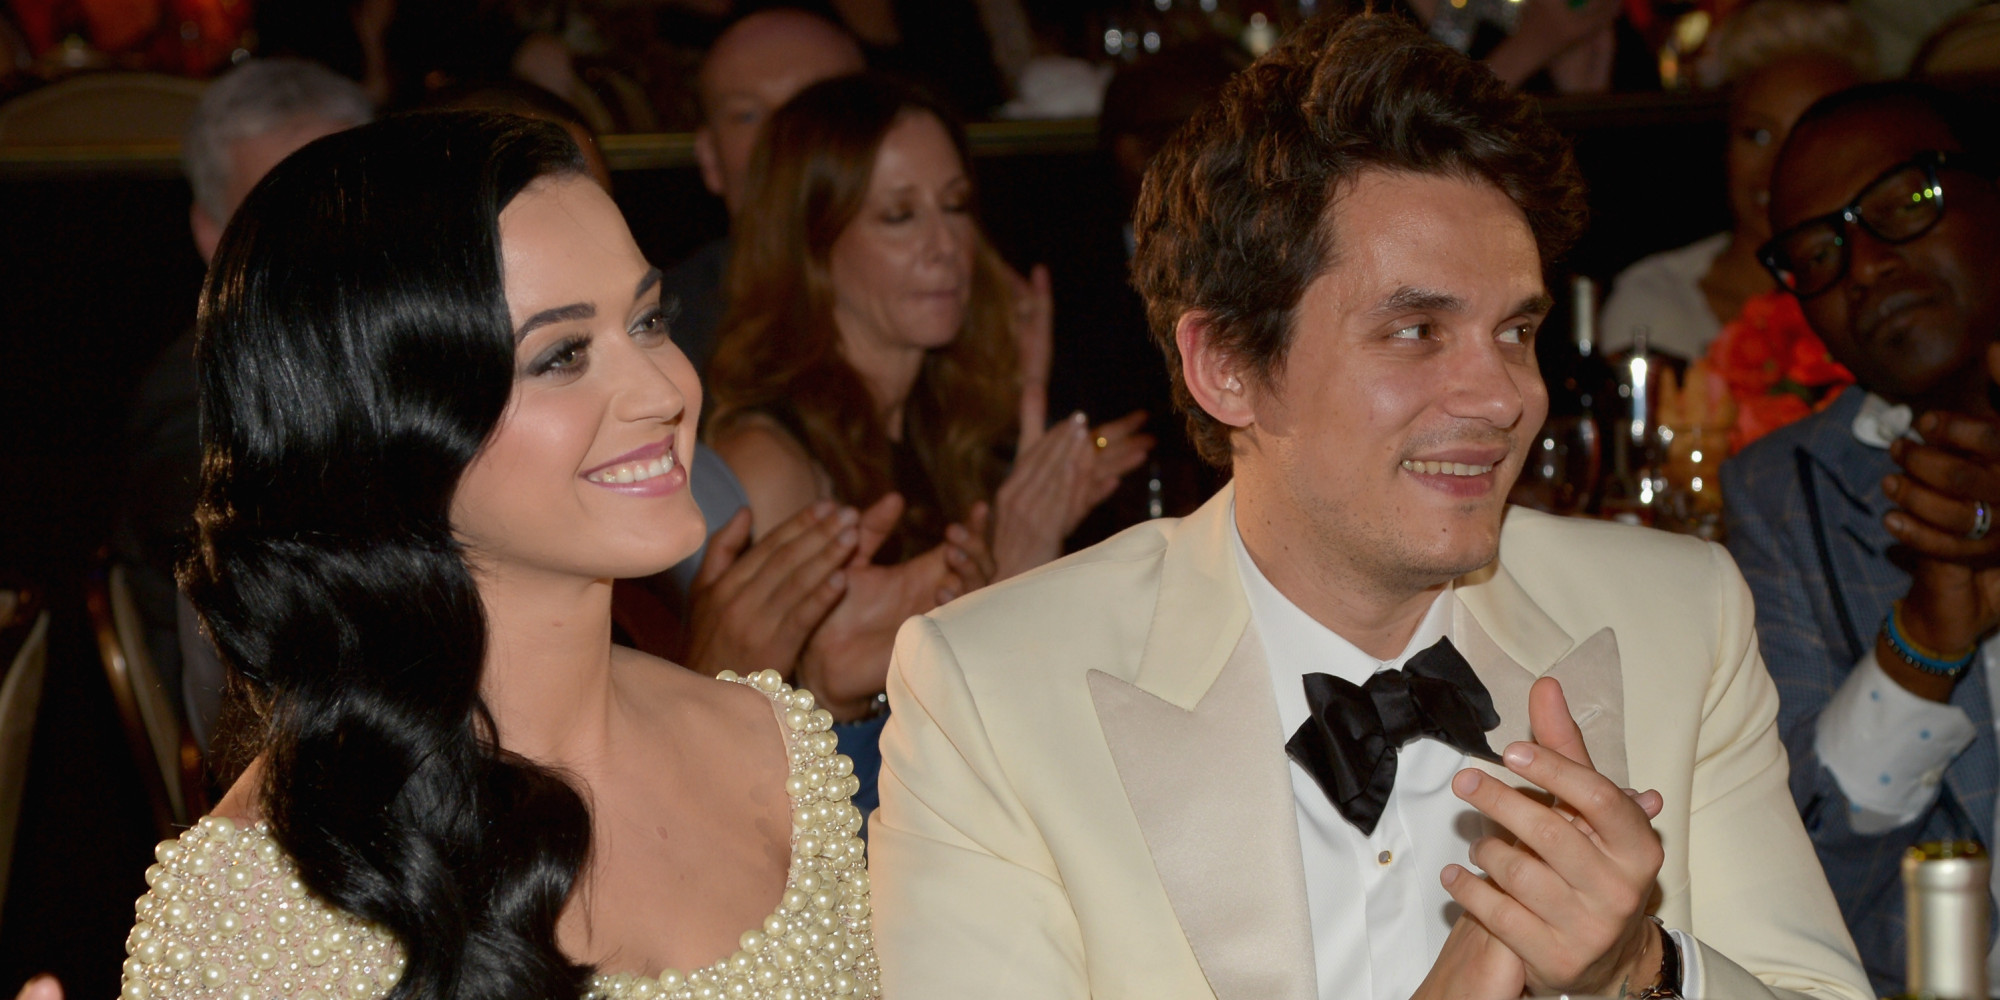 john mayer and katy perry take their first portraits for